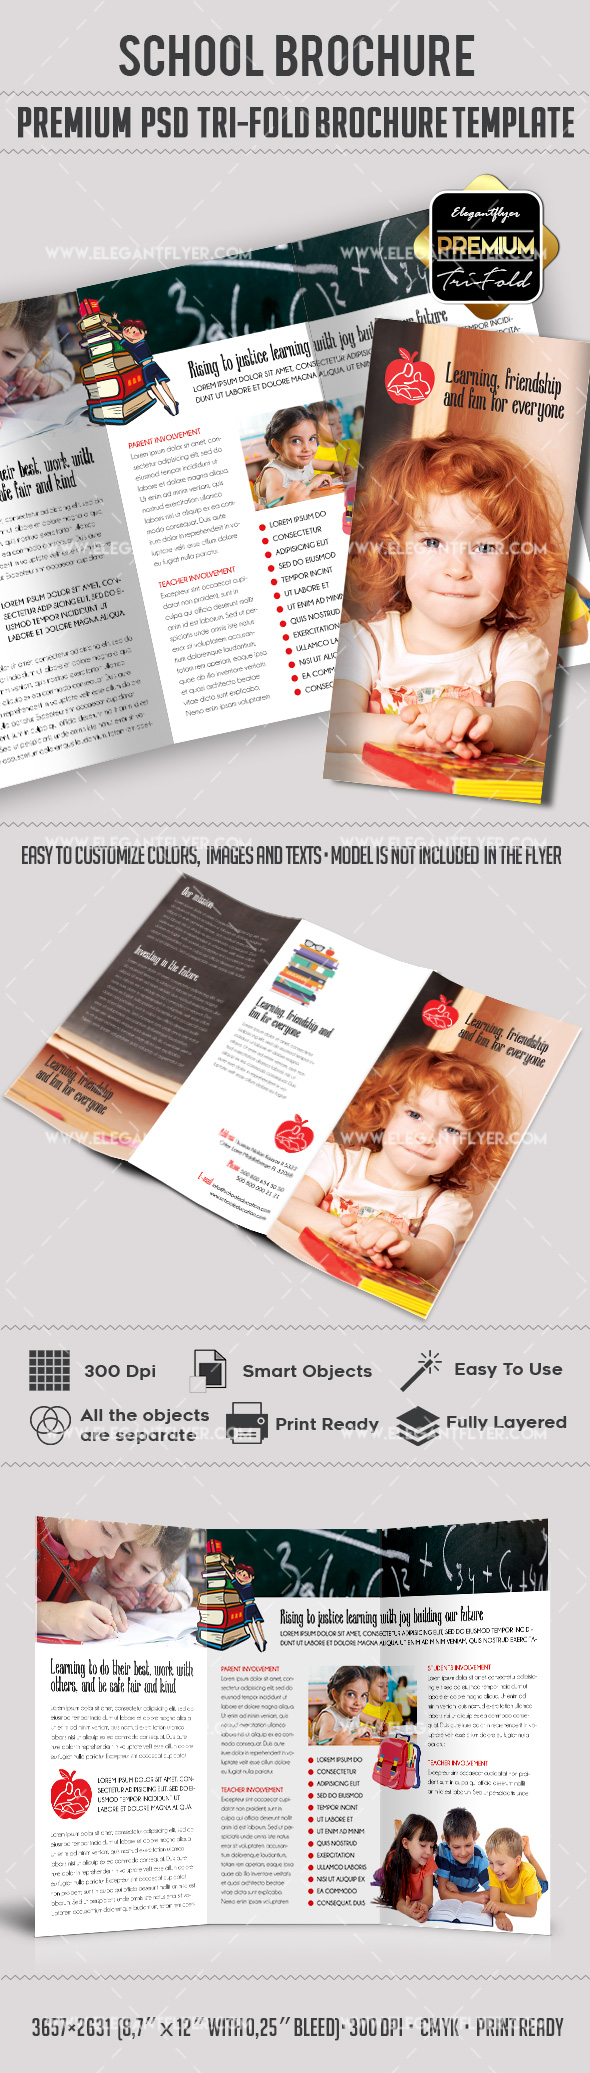 School Premium TriFold PSD Brochure Template By ElegantFlyer - Tri fold school brochure template